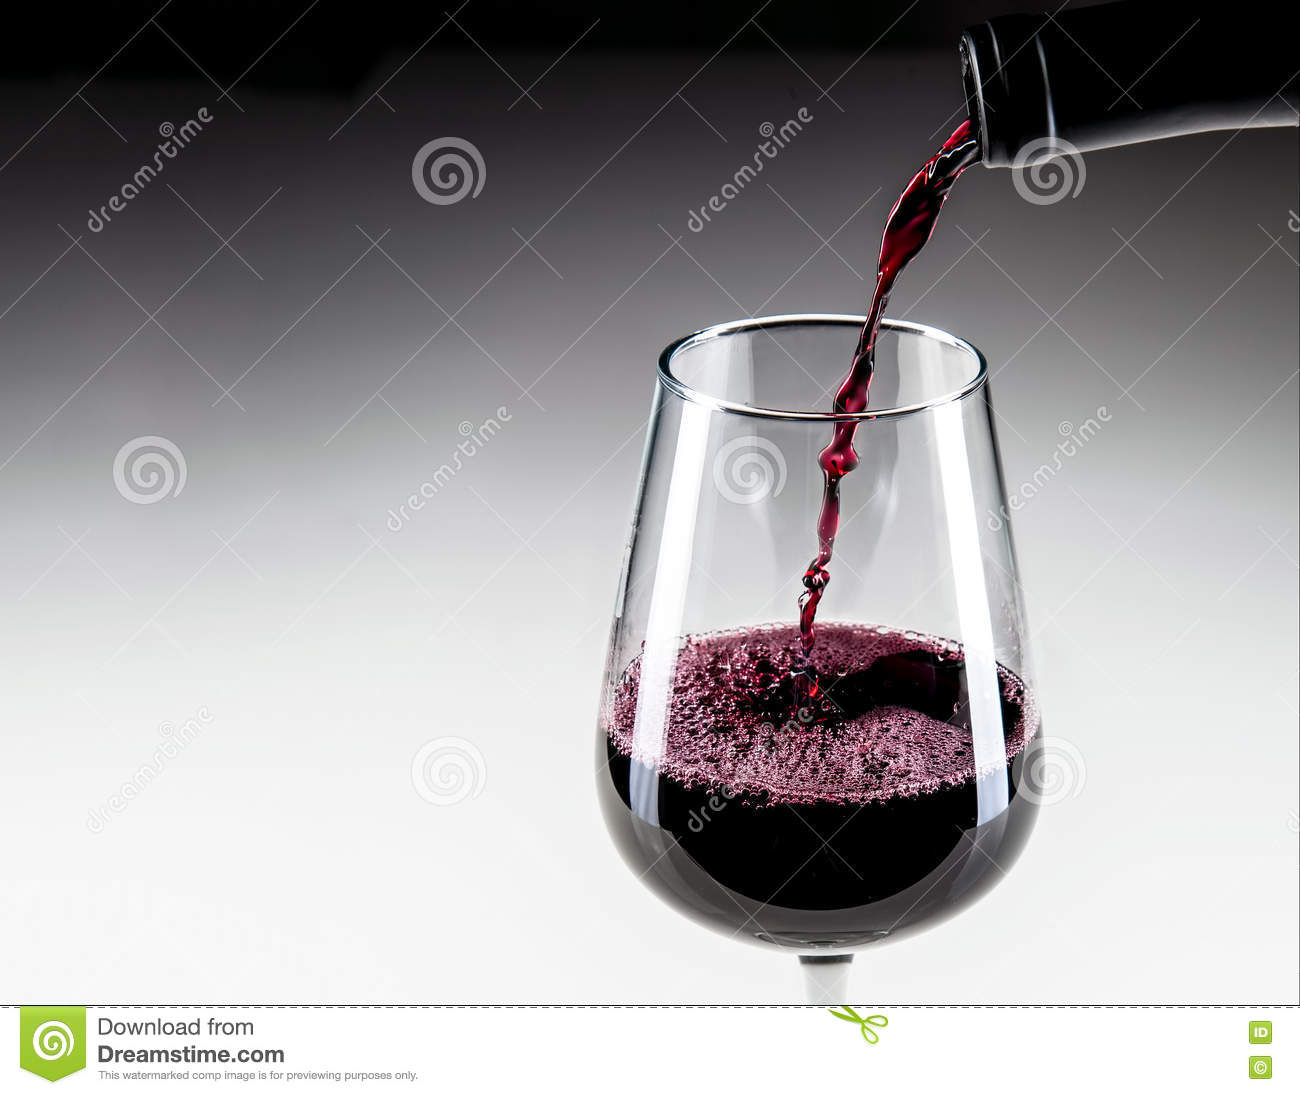 Close-up Pouring Red Wine Into Glass